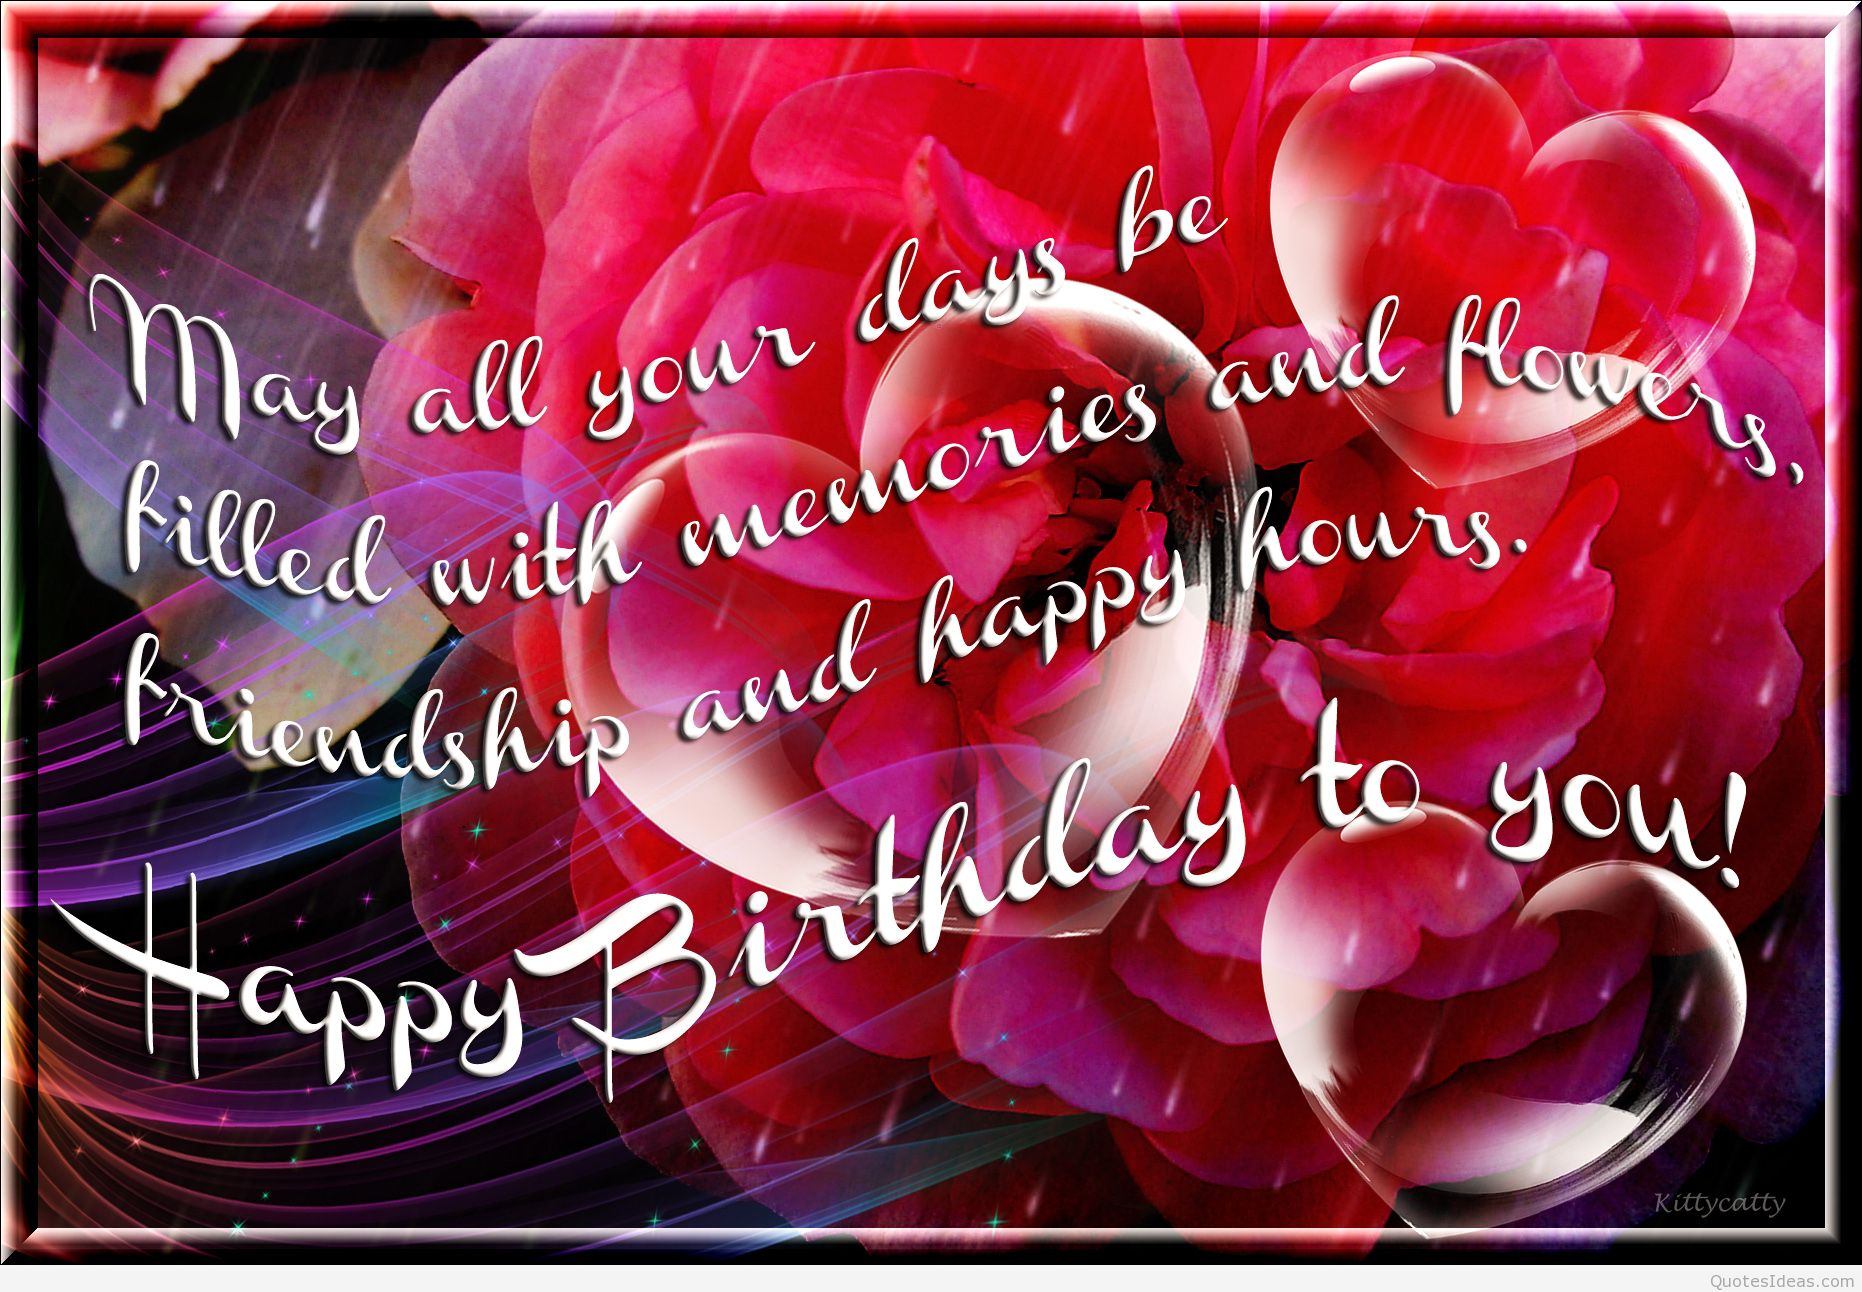 happy birthday wishes images download ; happy-birthday-wallpapers-with-quotes-3